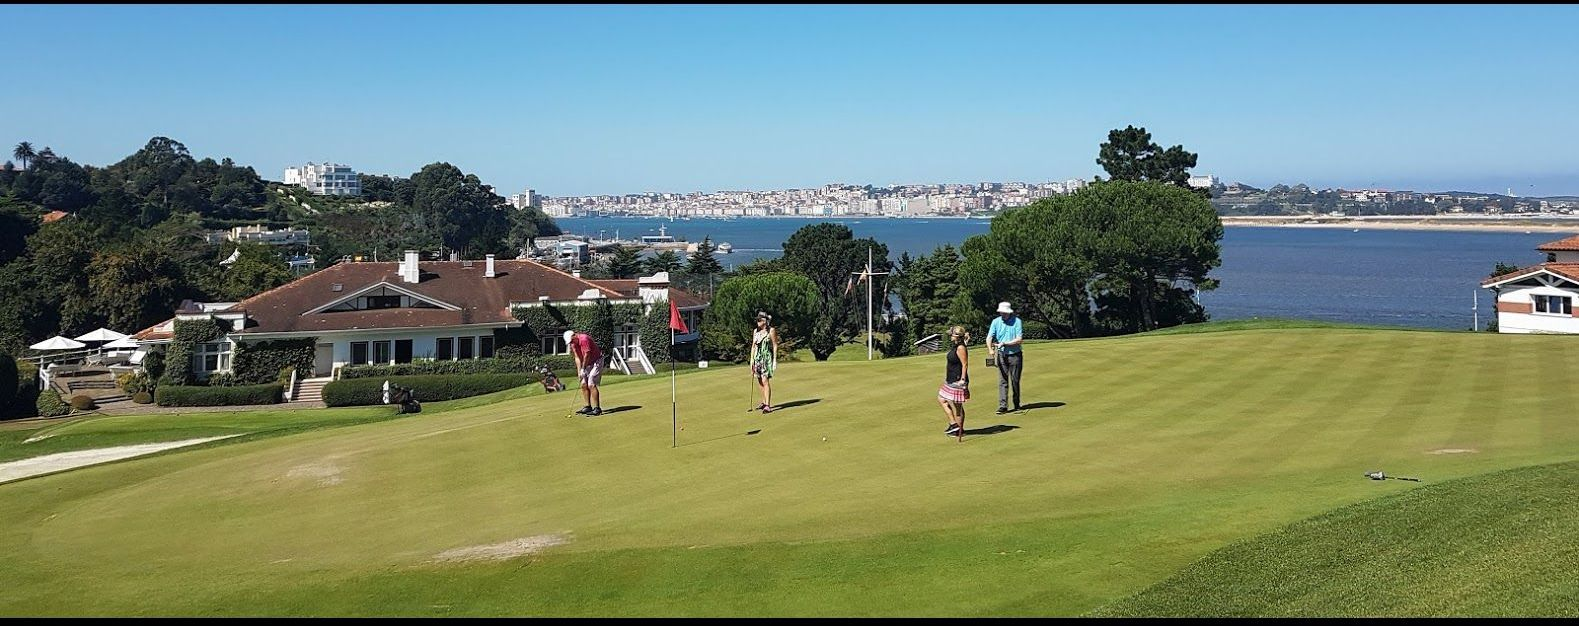 Your golf holiday in France comes complete with great weather.